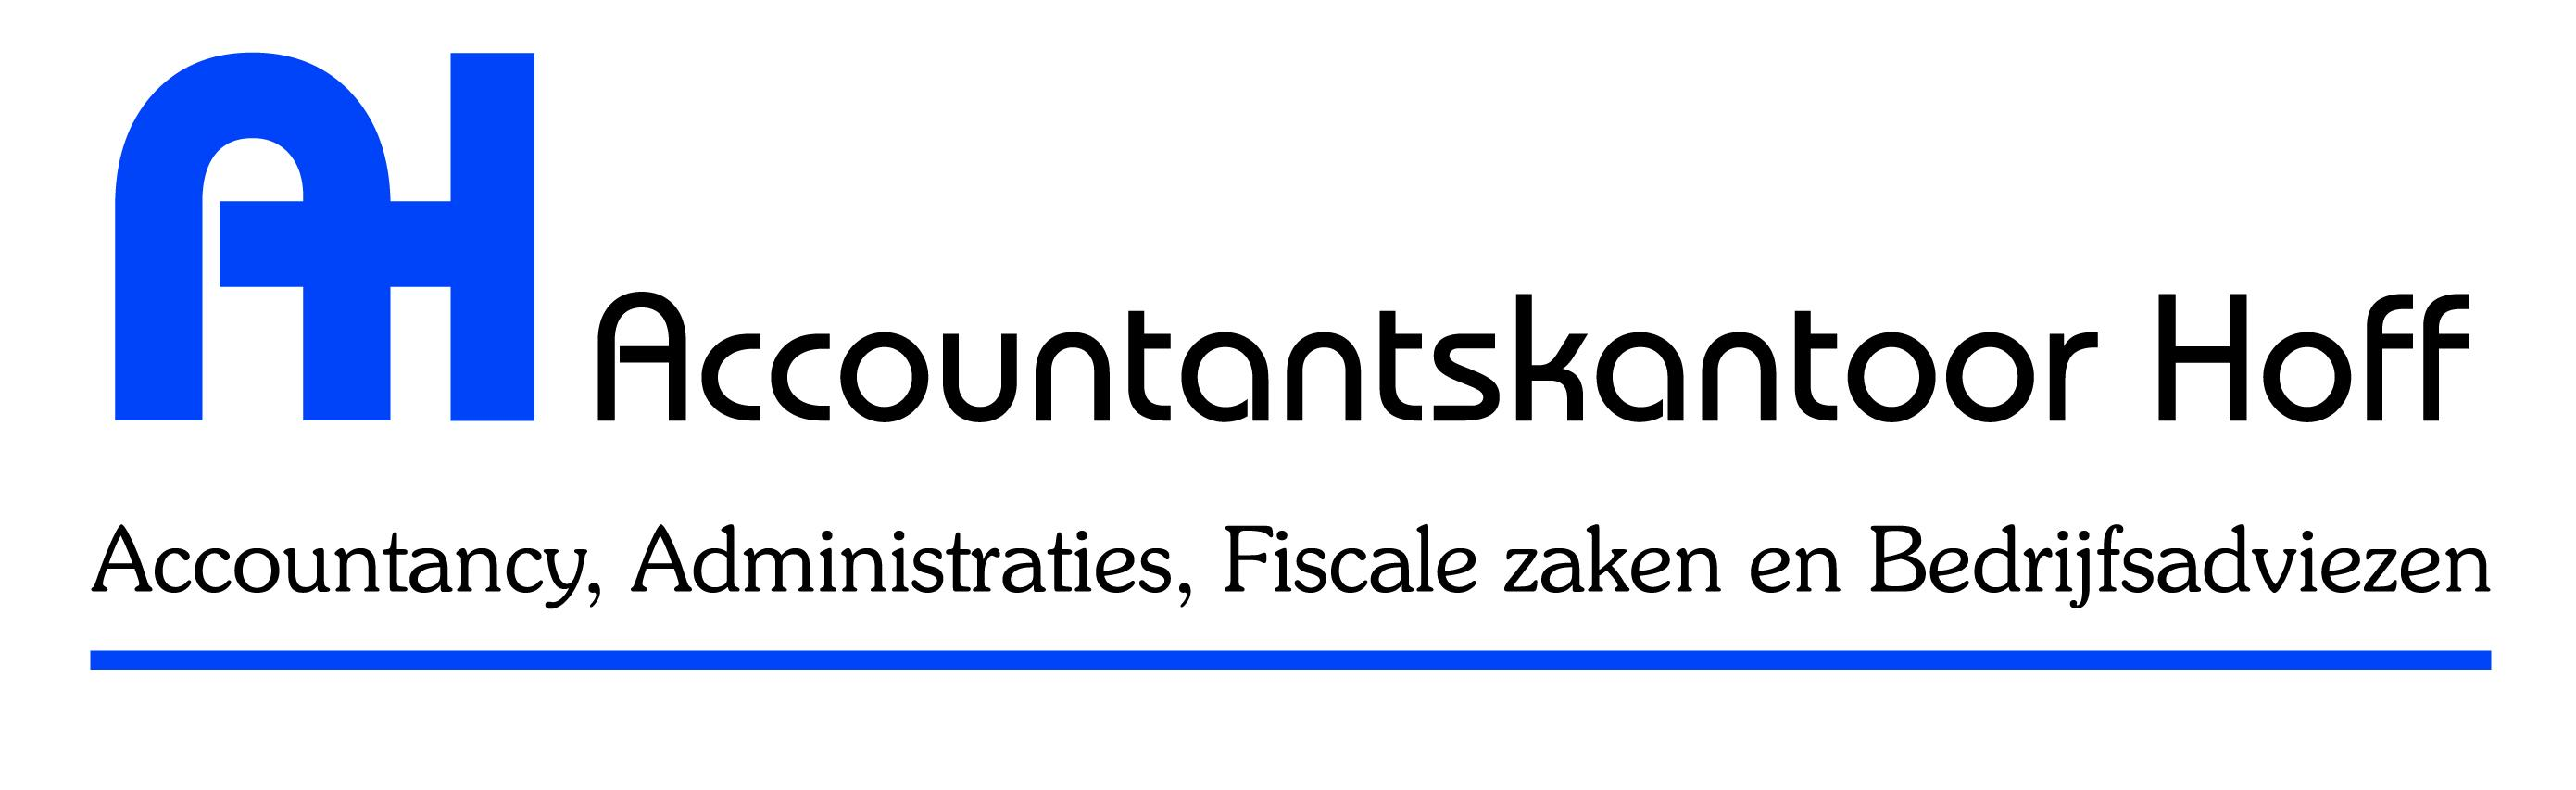 Accountantskantoor Hoff